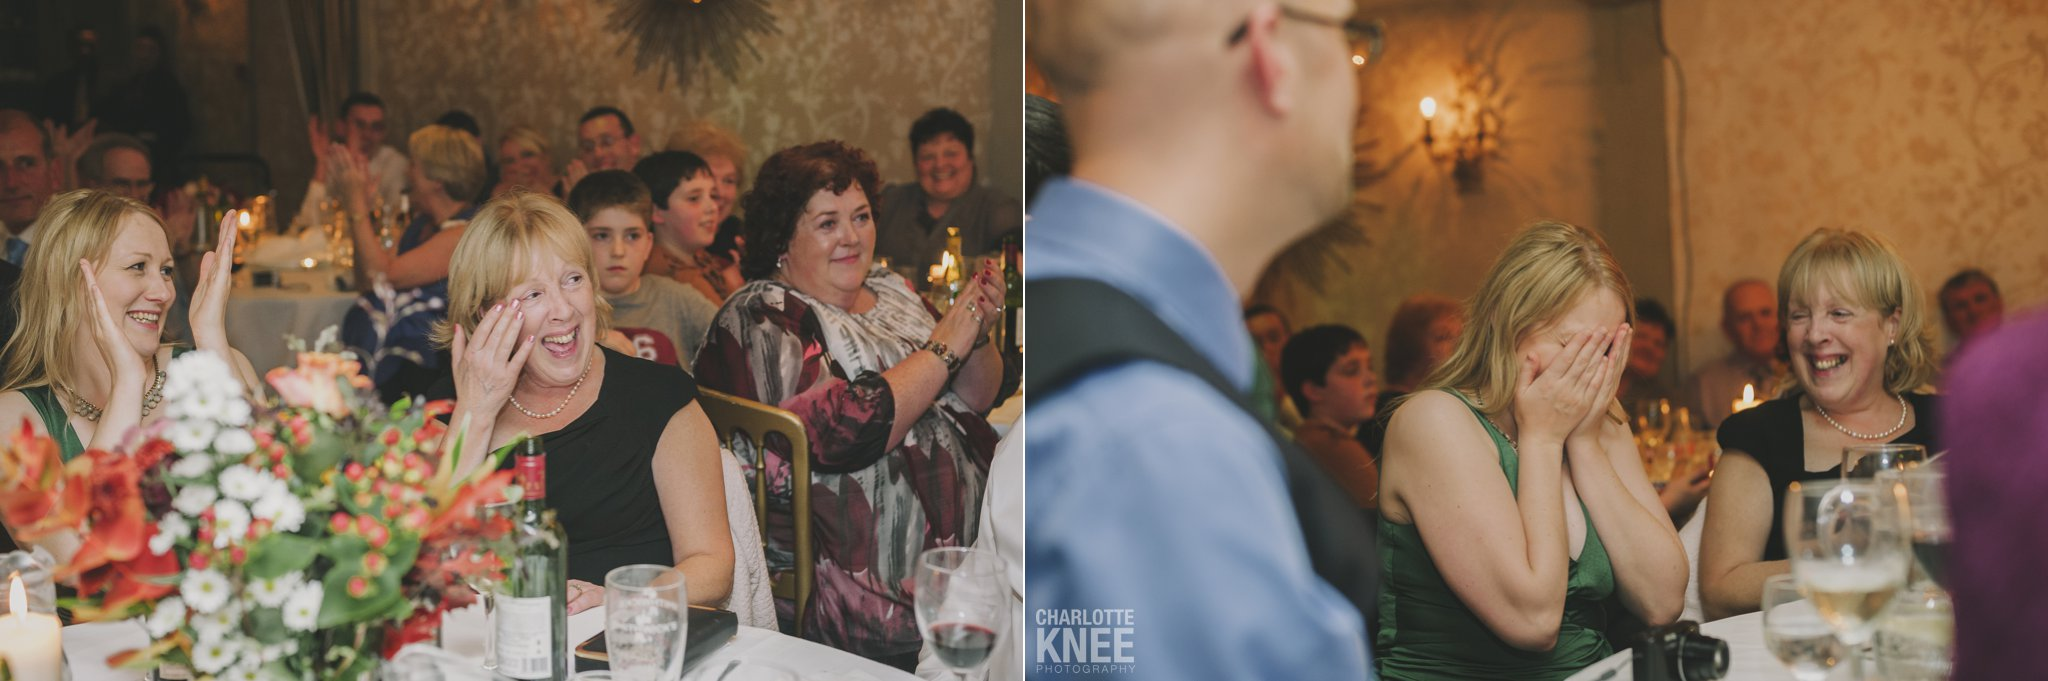 Destination-Wedding-The-Anglers-Rest-Dublin-Charlotte-Knee-Photography_0069.jpg